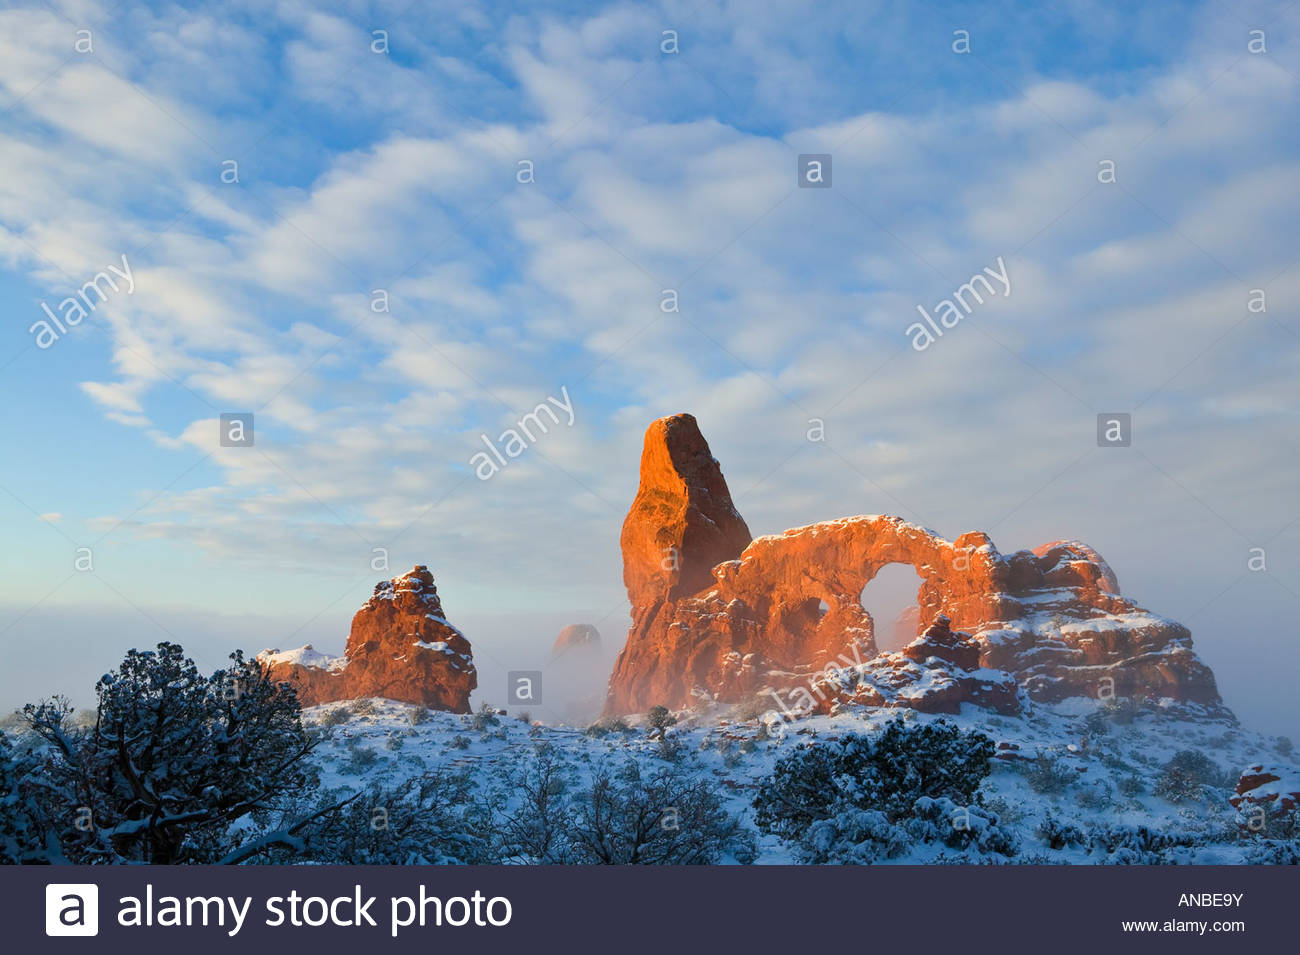 Turret Arch, a prominent natural arch in Arches National Park, Utah, is lit by the rising sun on a foggy winter - Stock Image